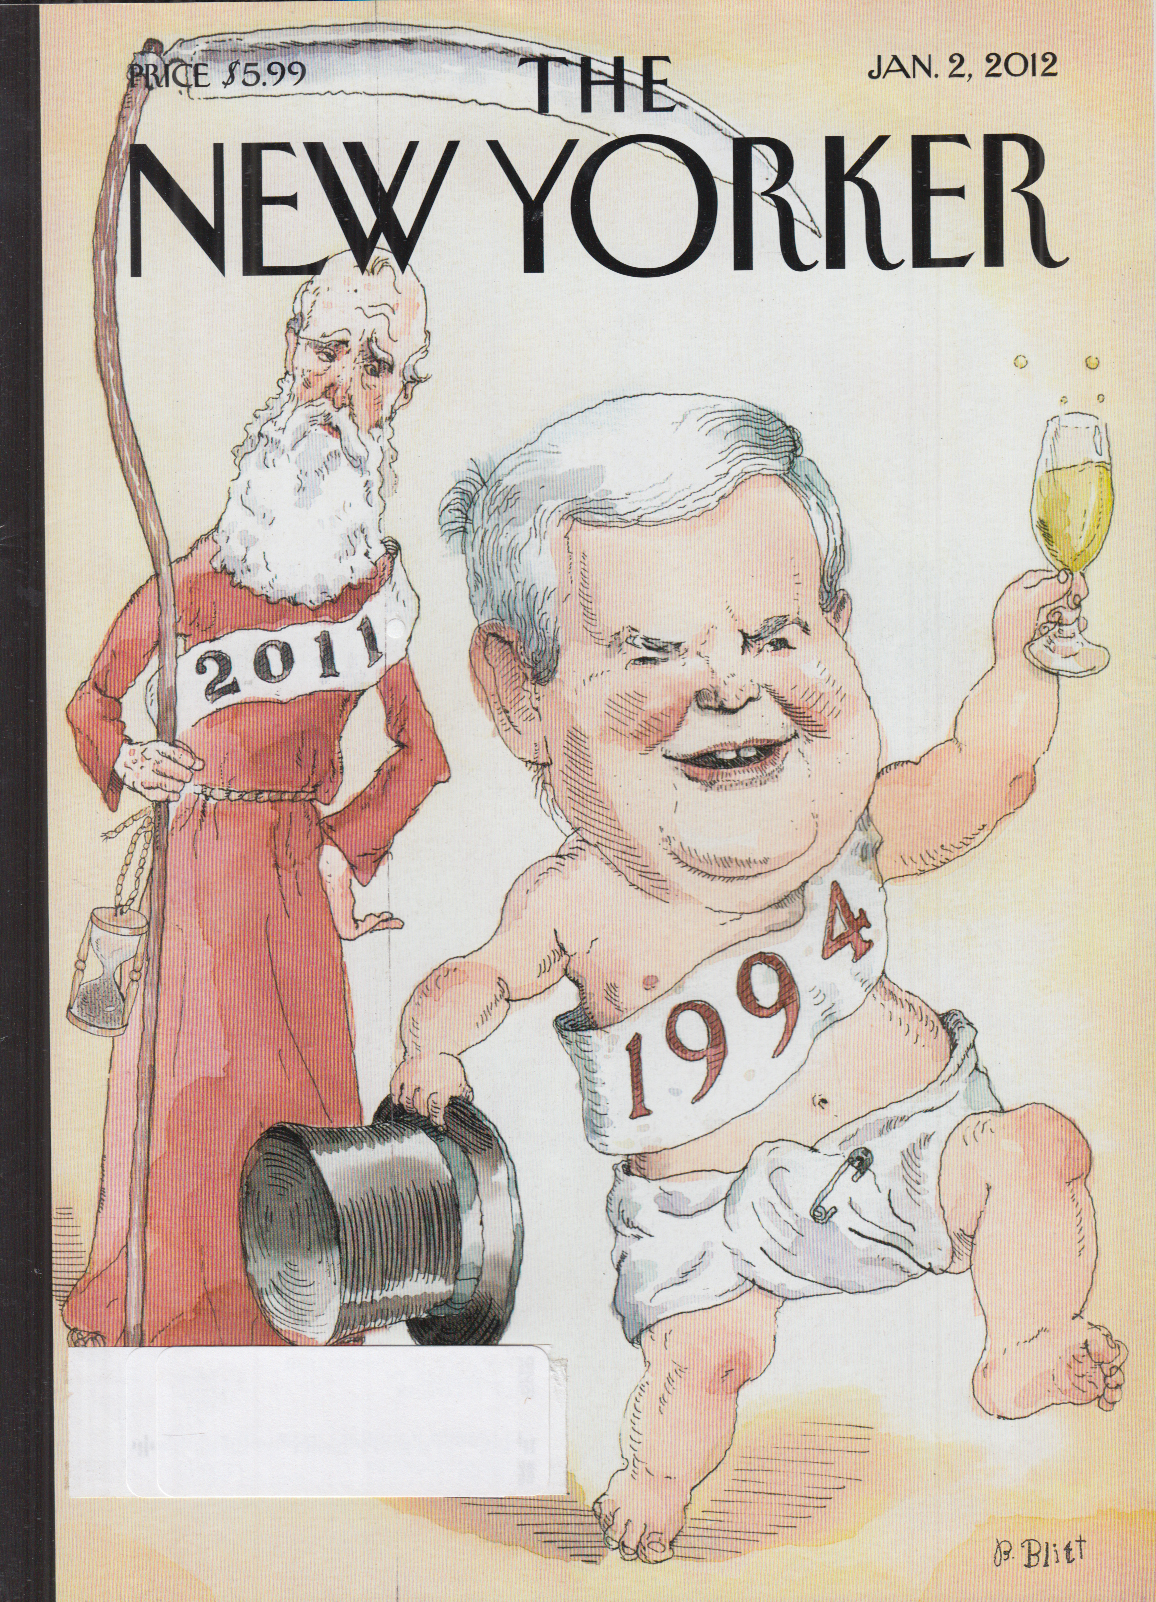 New Yorker cover Blitt 1/2 2012 Father Time 2011 watches Baby Gingrich as 1994